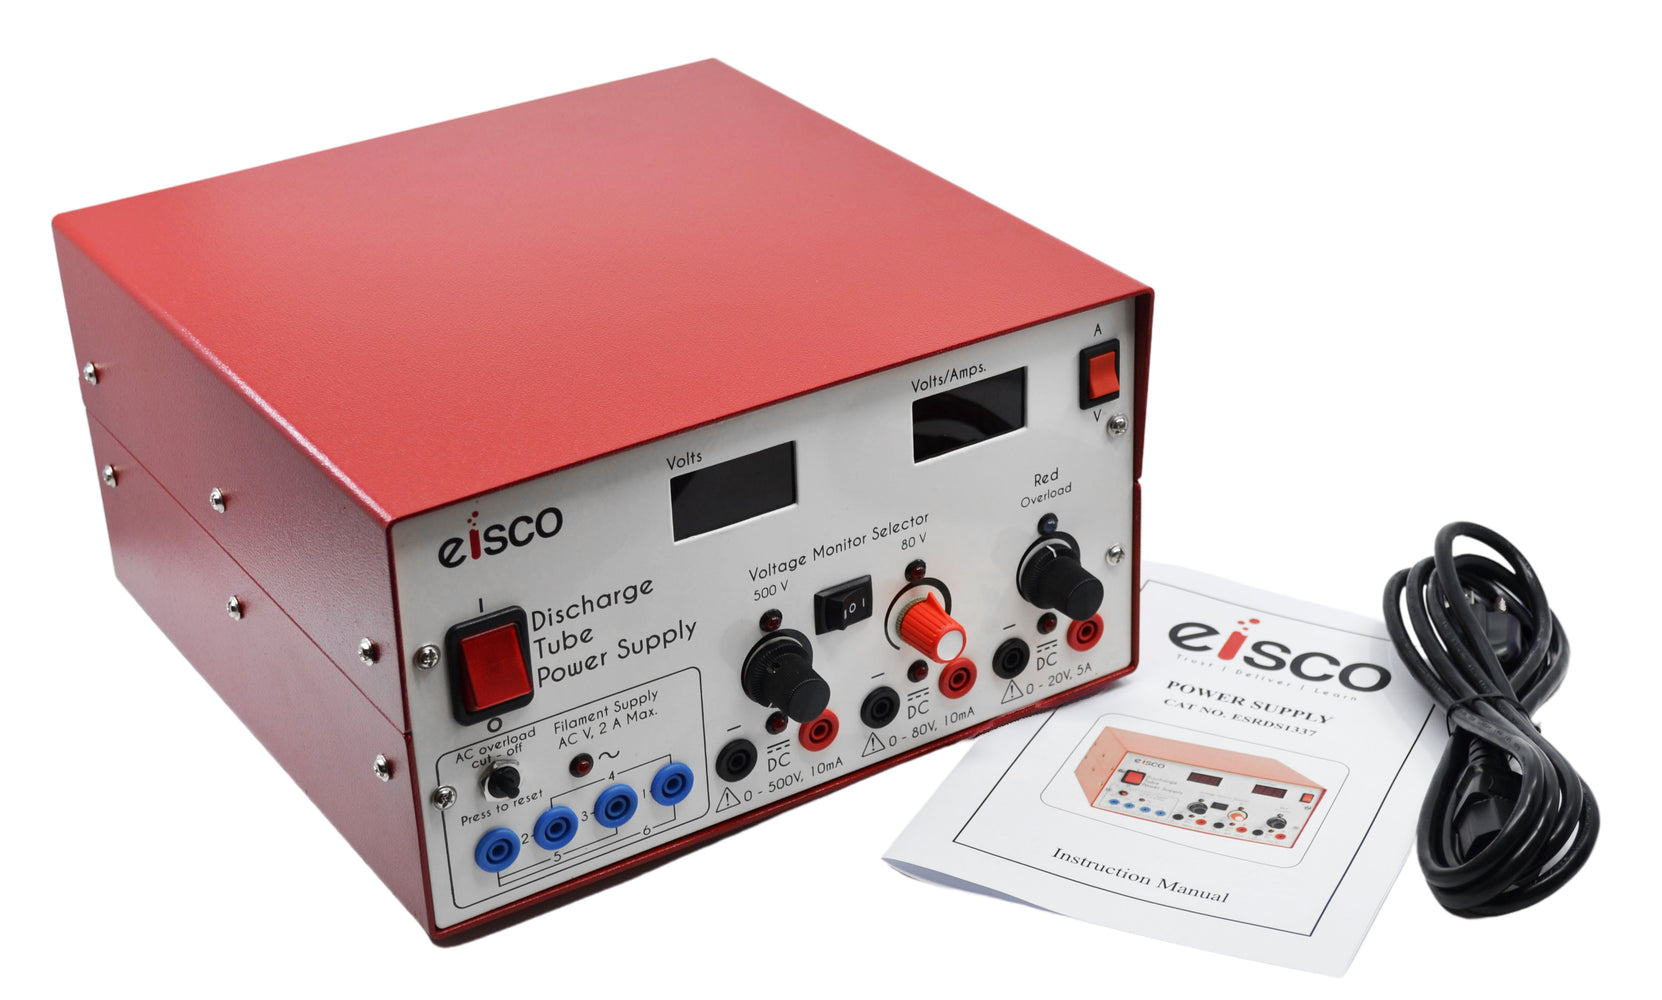 Power Supply, 11 Inch - Digital - Premium Quality - AC/DC - With Overload Protection - Eisco Labs